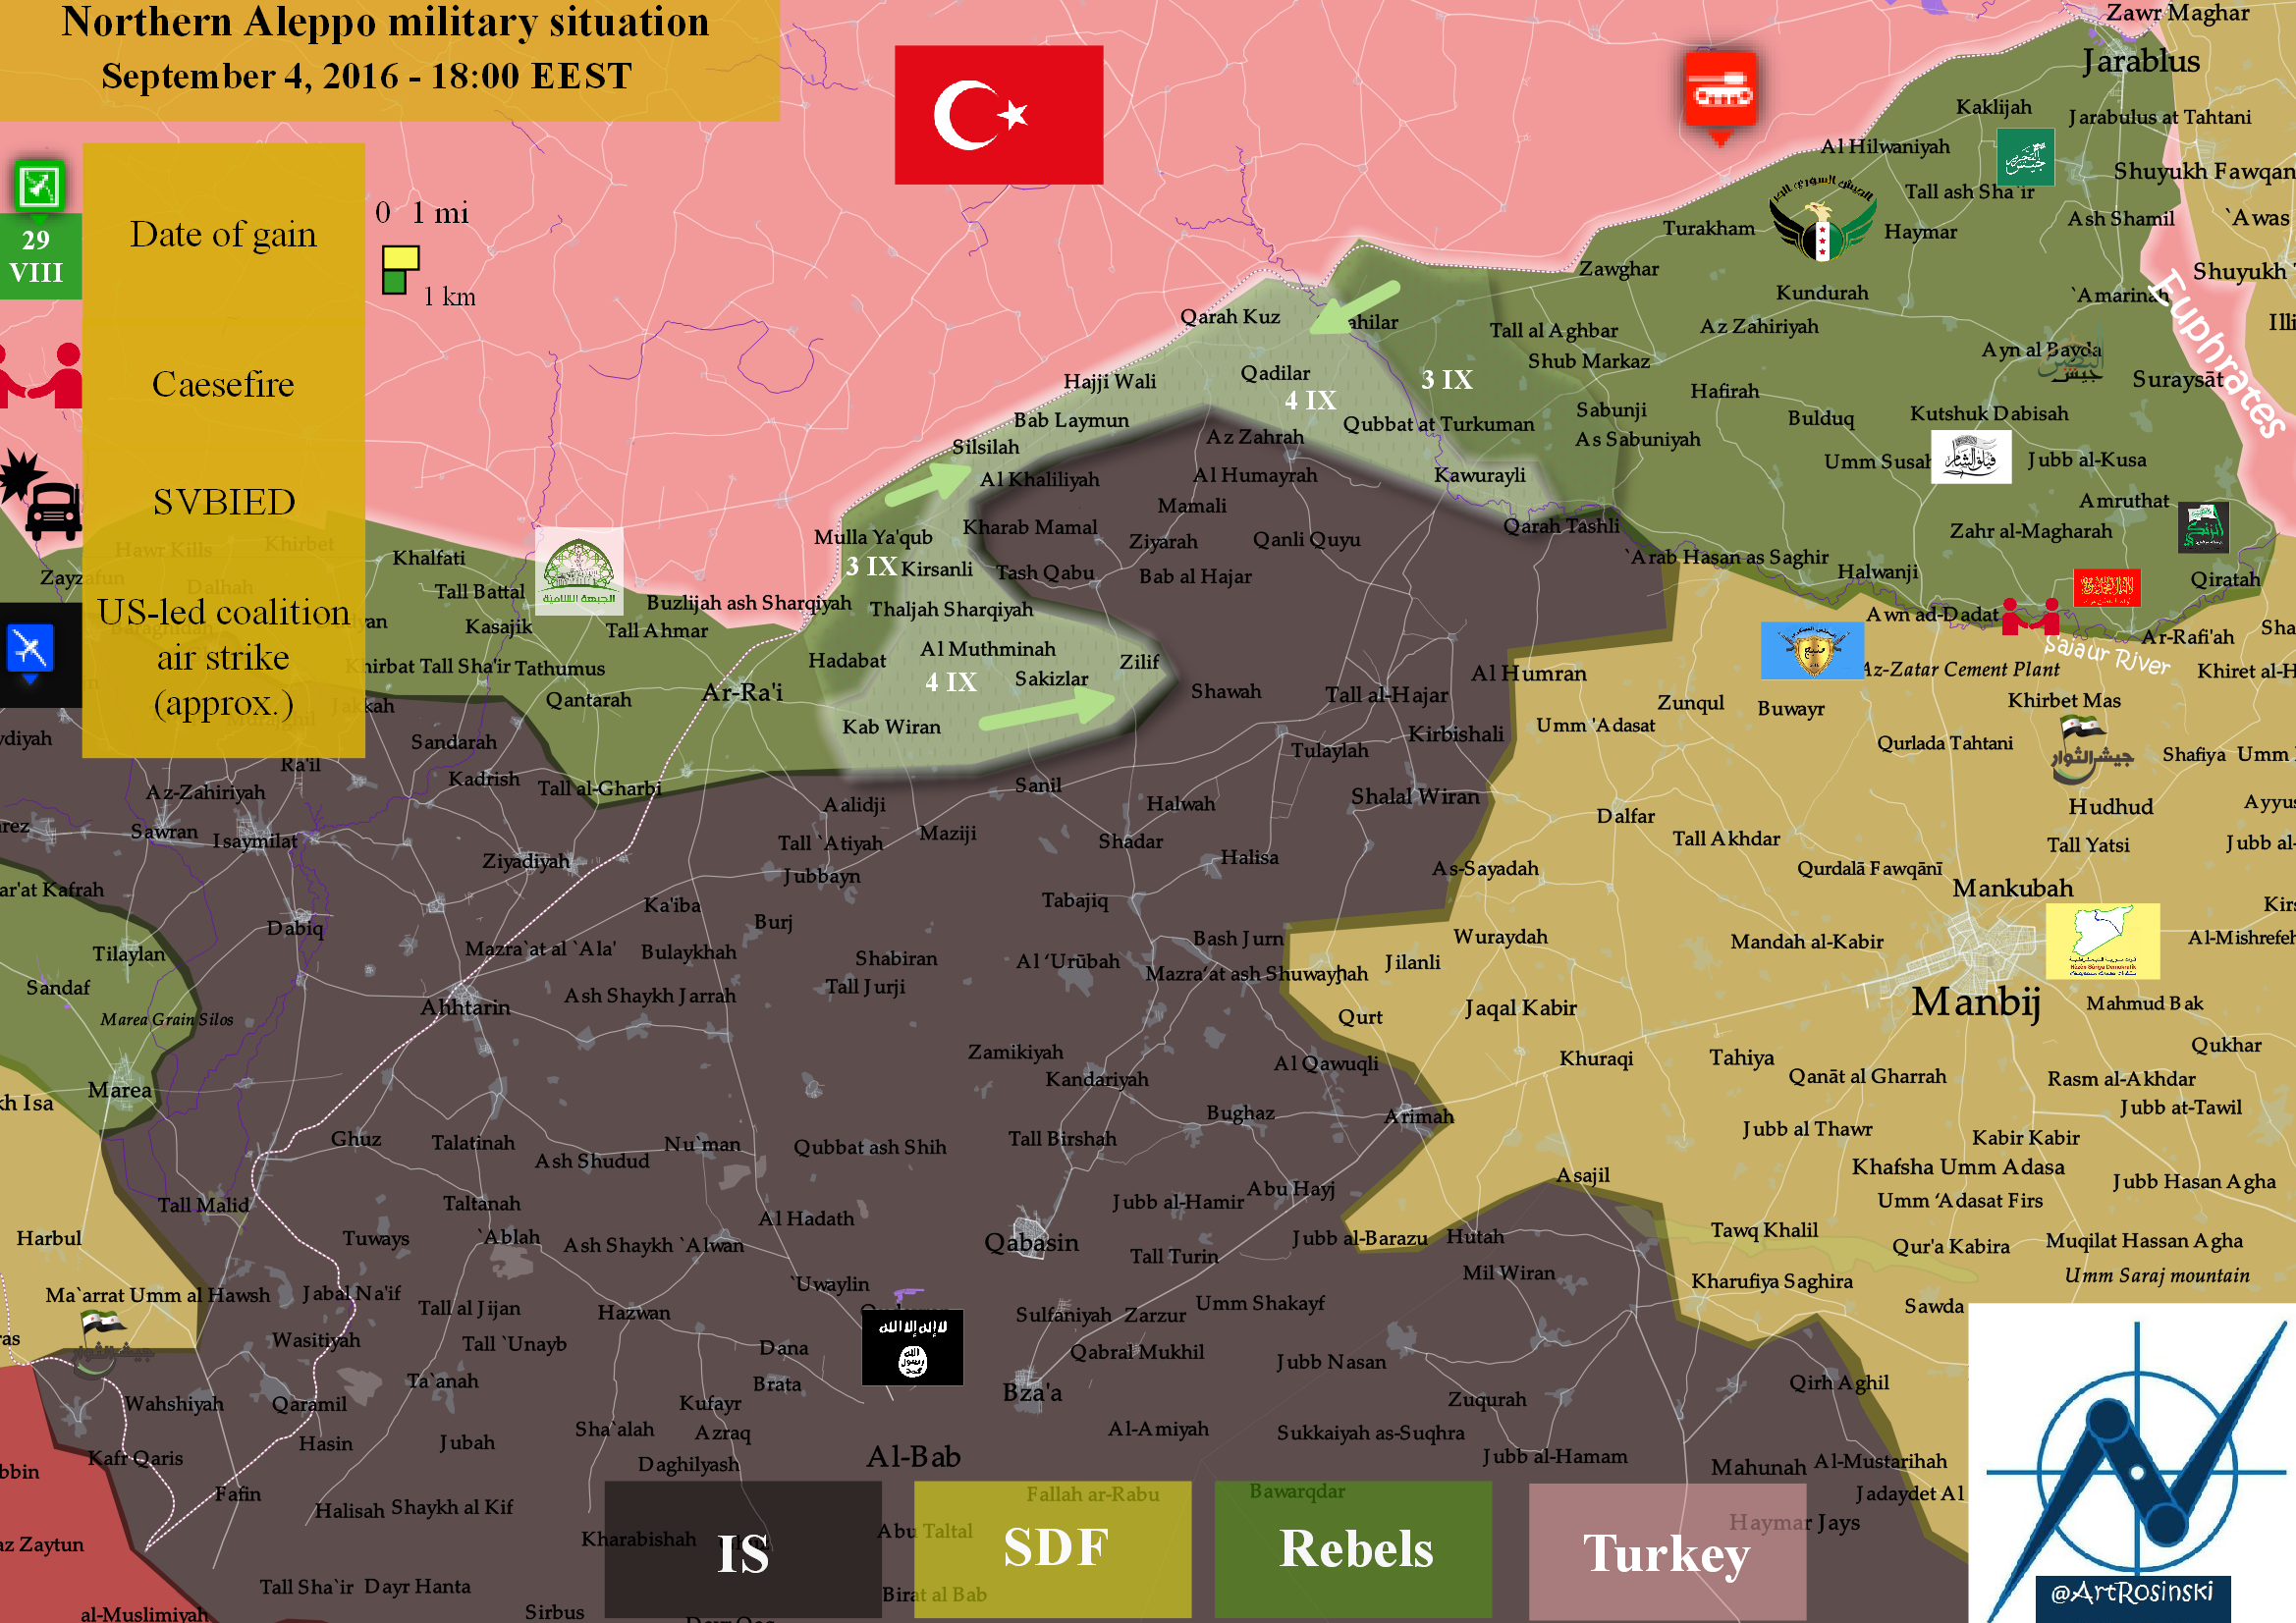 Northern Aleppo military situation (September 4, 2016) EA